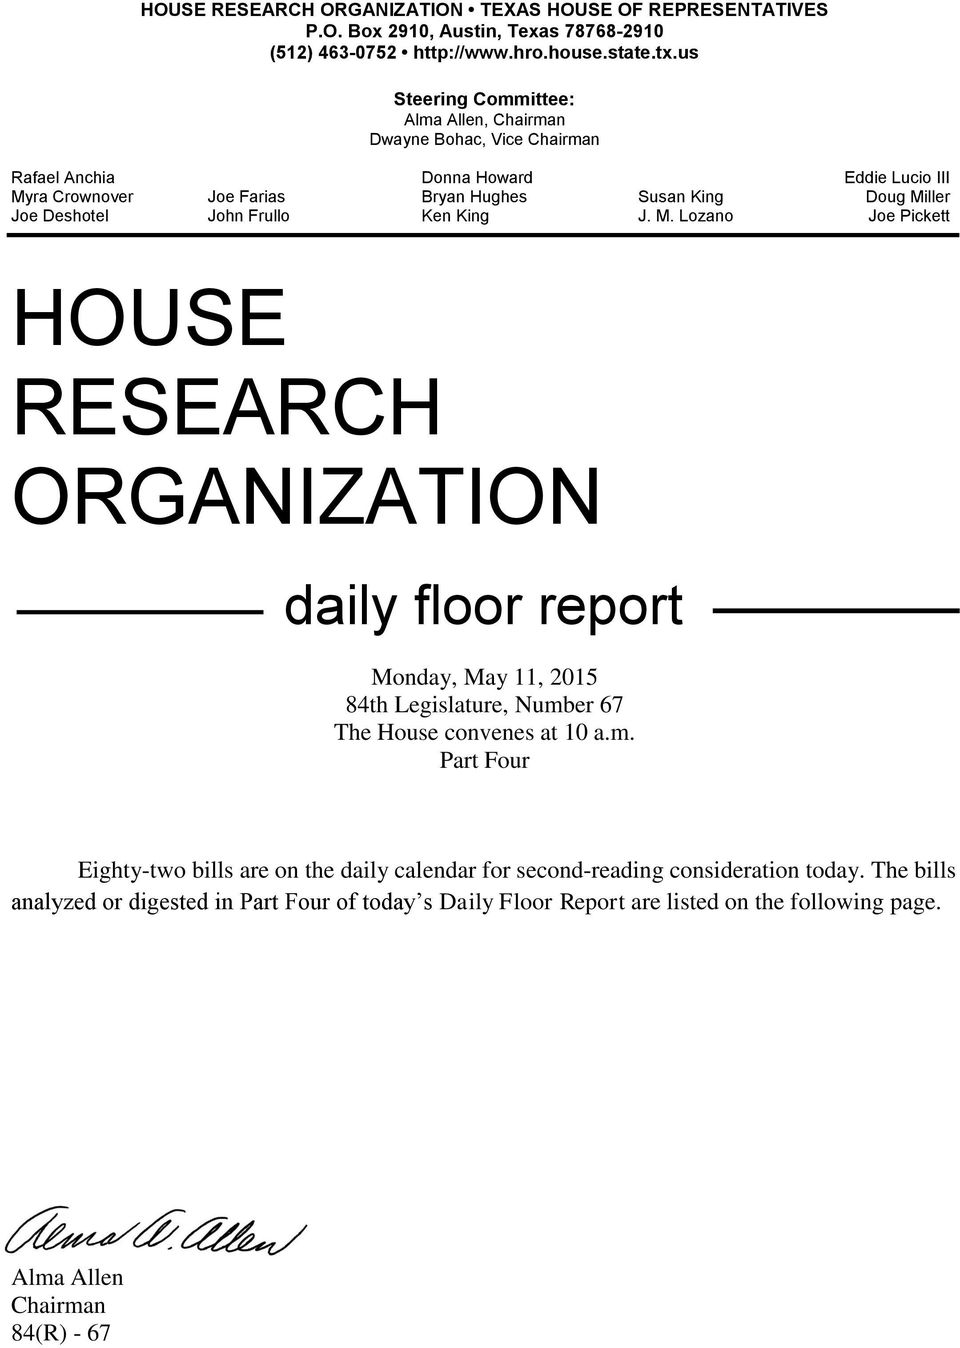 Deshotel John Frullo Ken King J. M. Lozano Joe Pickett HOUSE RESEARCH ORGANIZATION daily floor report Monday, May 11, 2015 84th Legislature, Numb